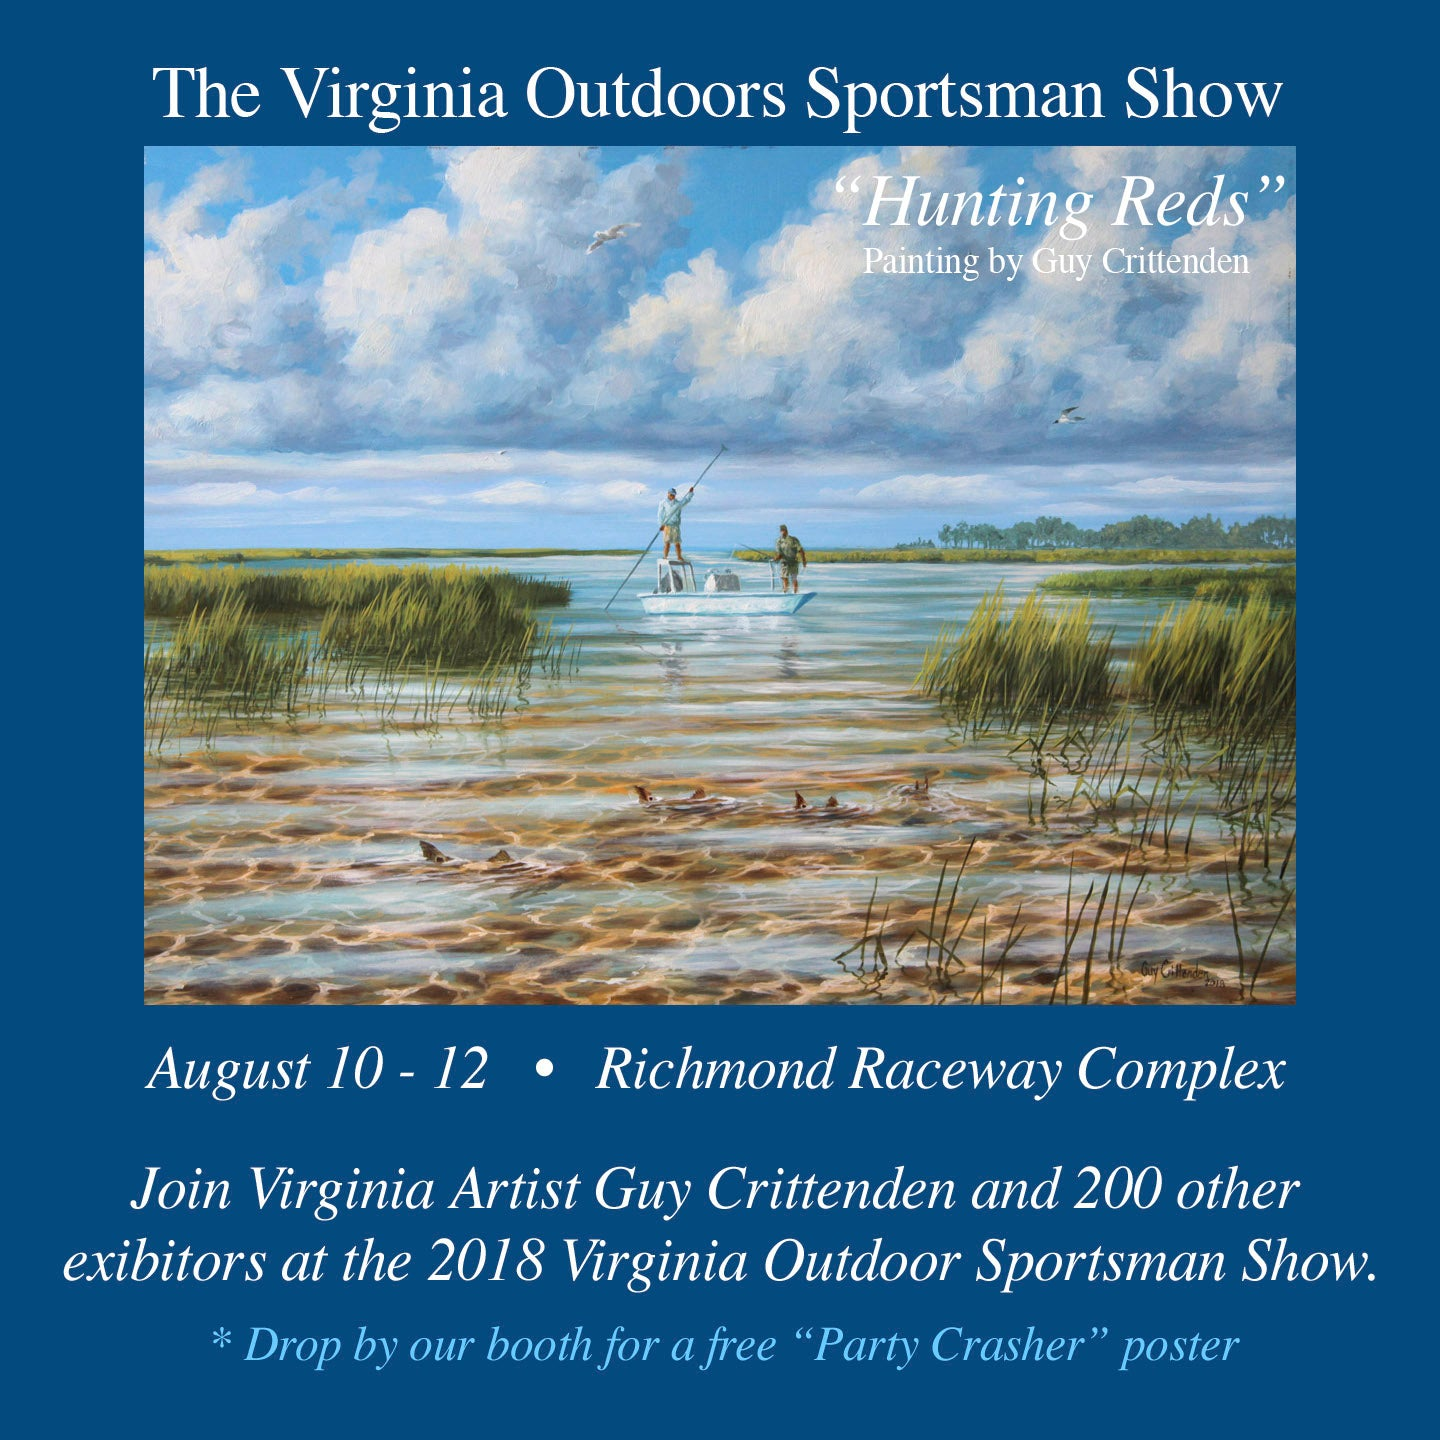 Artist Guy Crittenden showing at Virginia Outdoor Sportsman Show